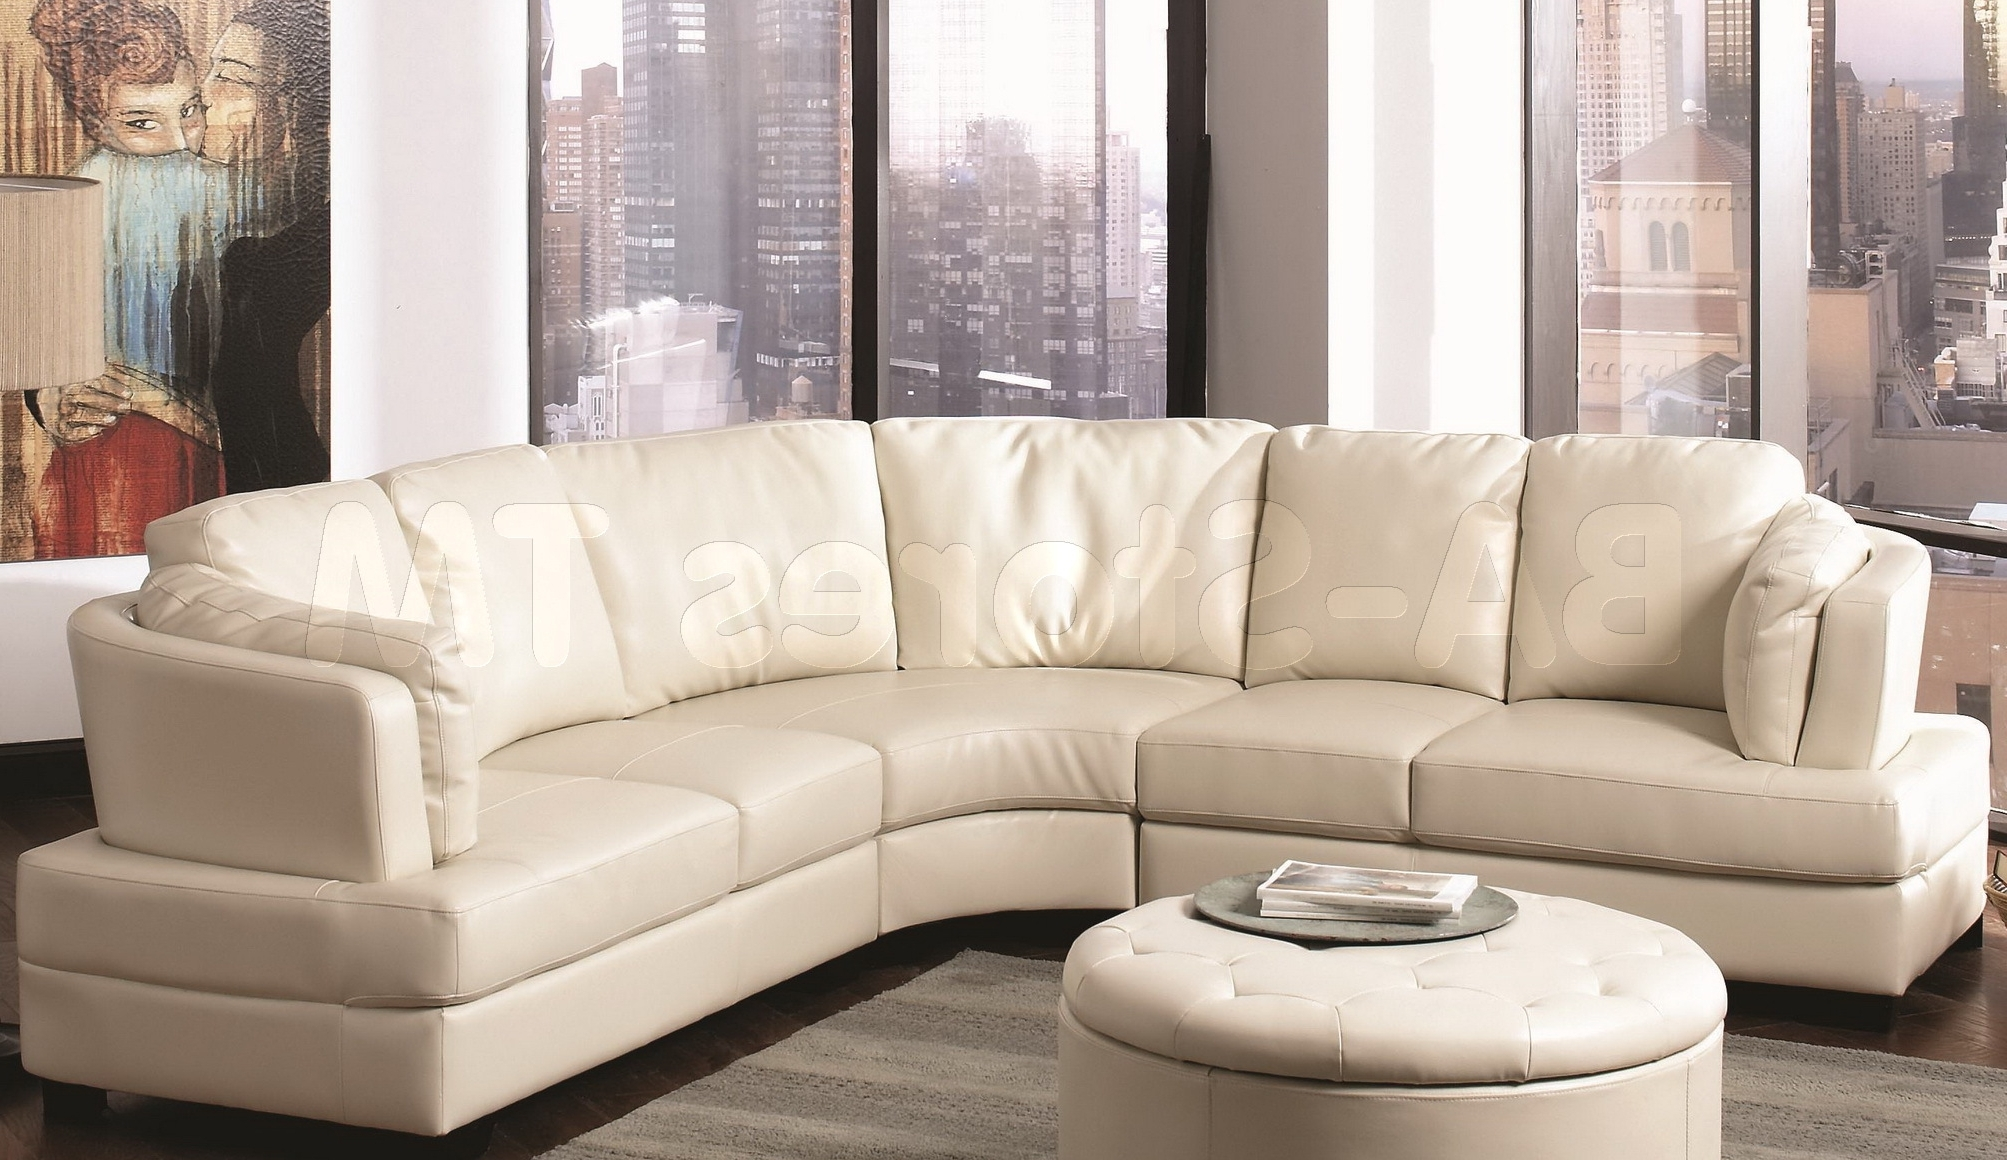 20 Ideas Of Kmart Sectional Sofas